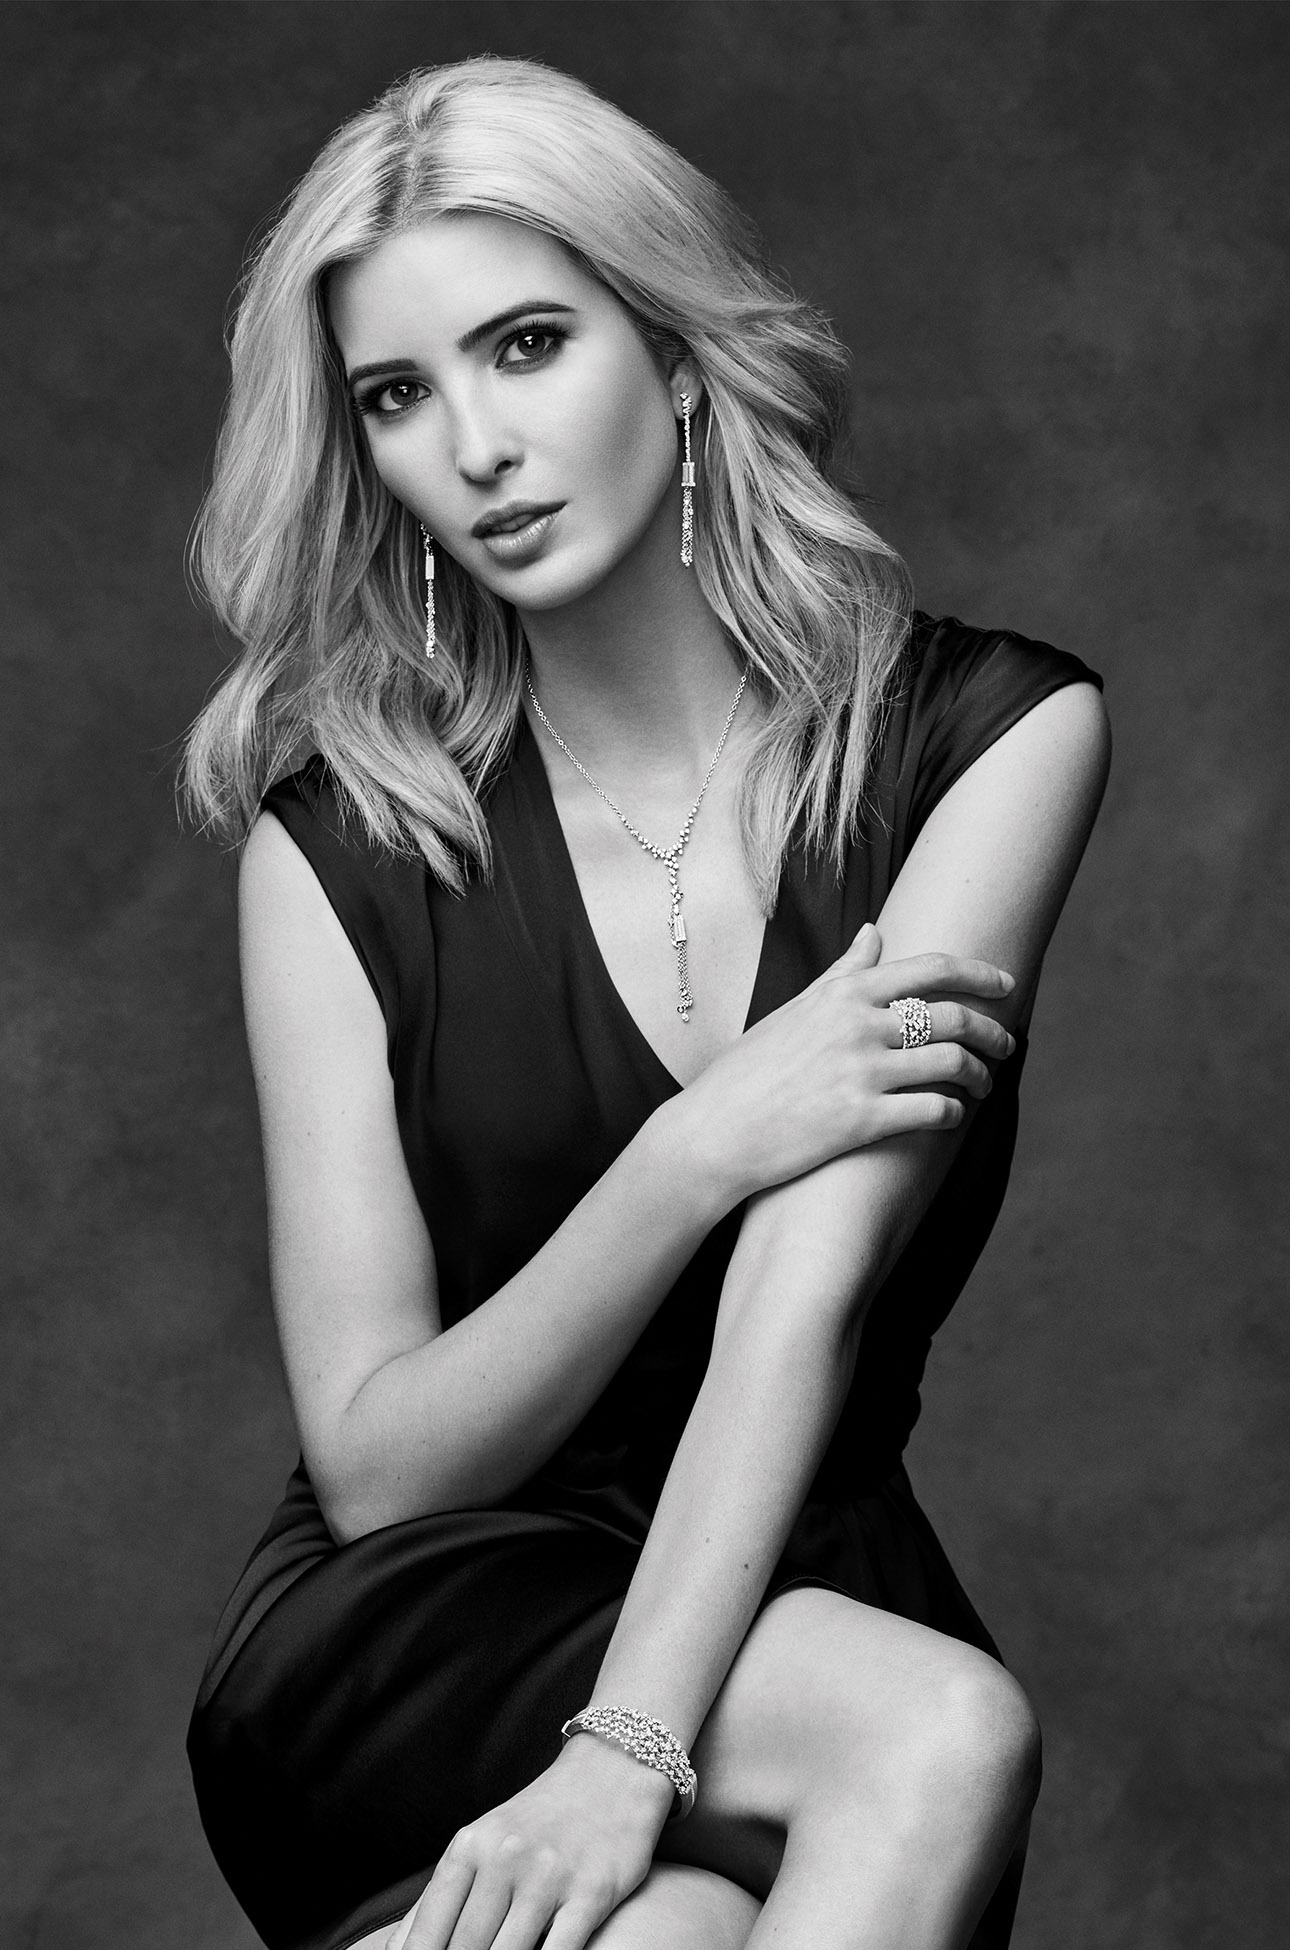 Ivanka Trump Wallpapers High Quality Download Free